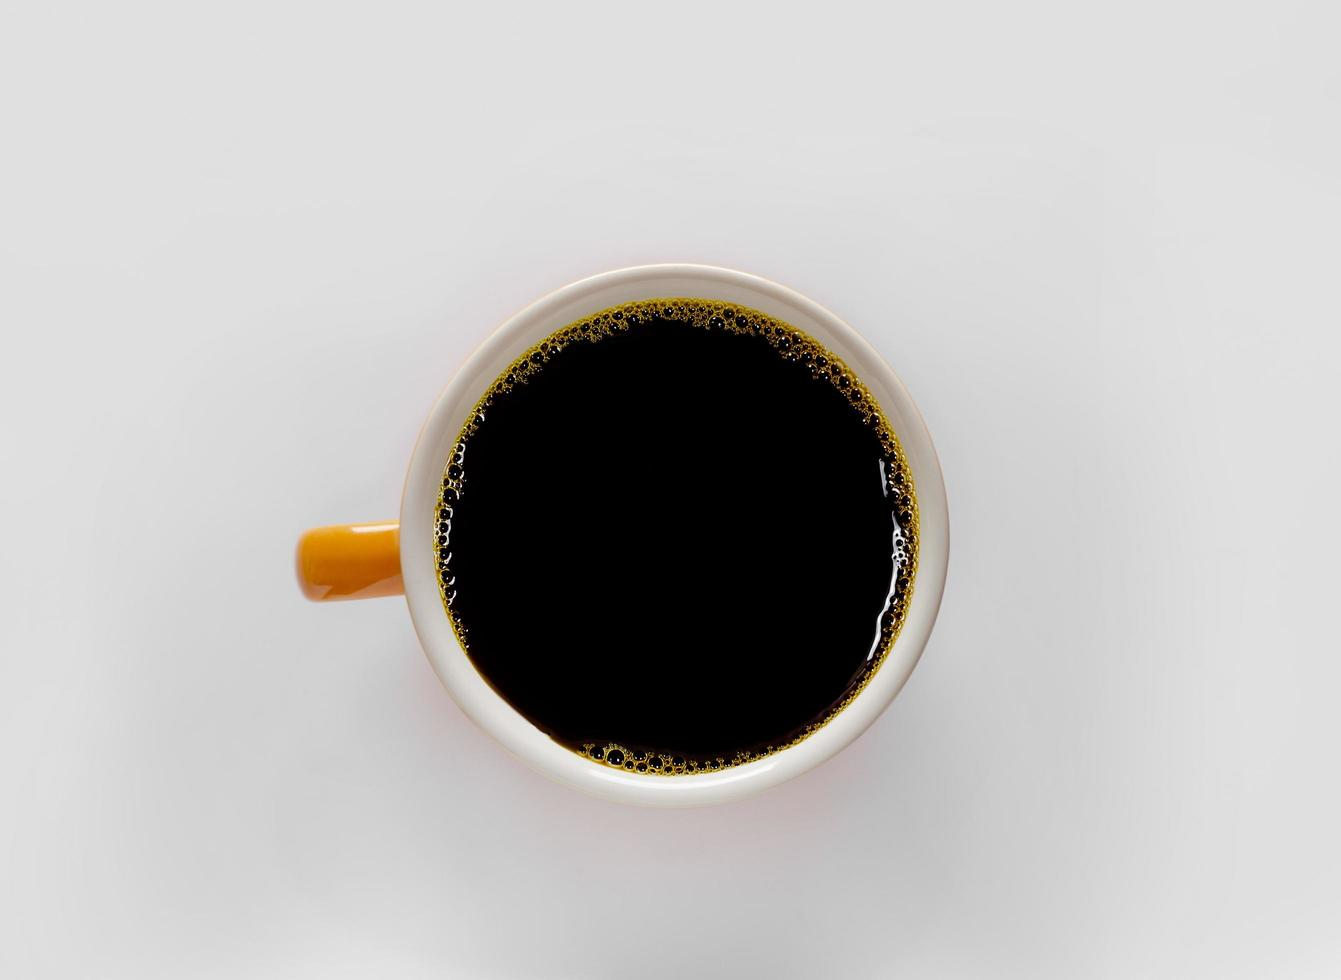 Flat lay view of black coffee in a bright orange cup photo